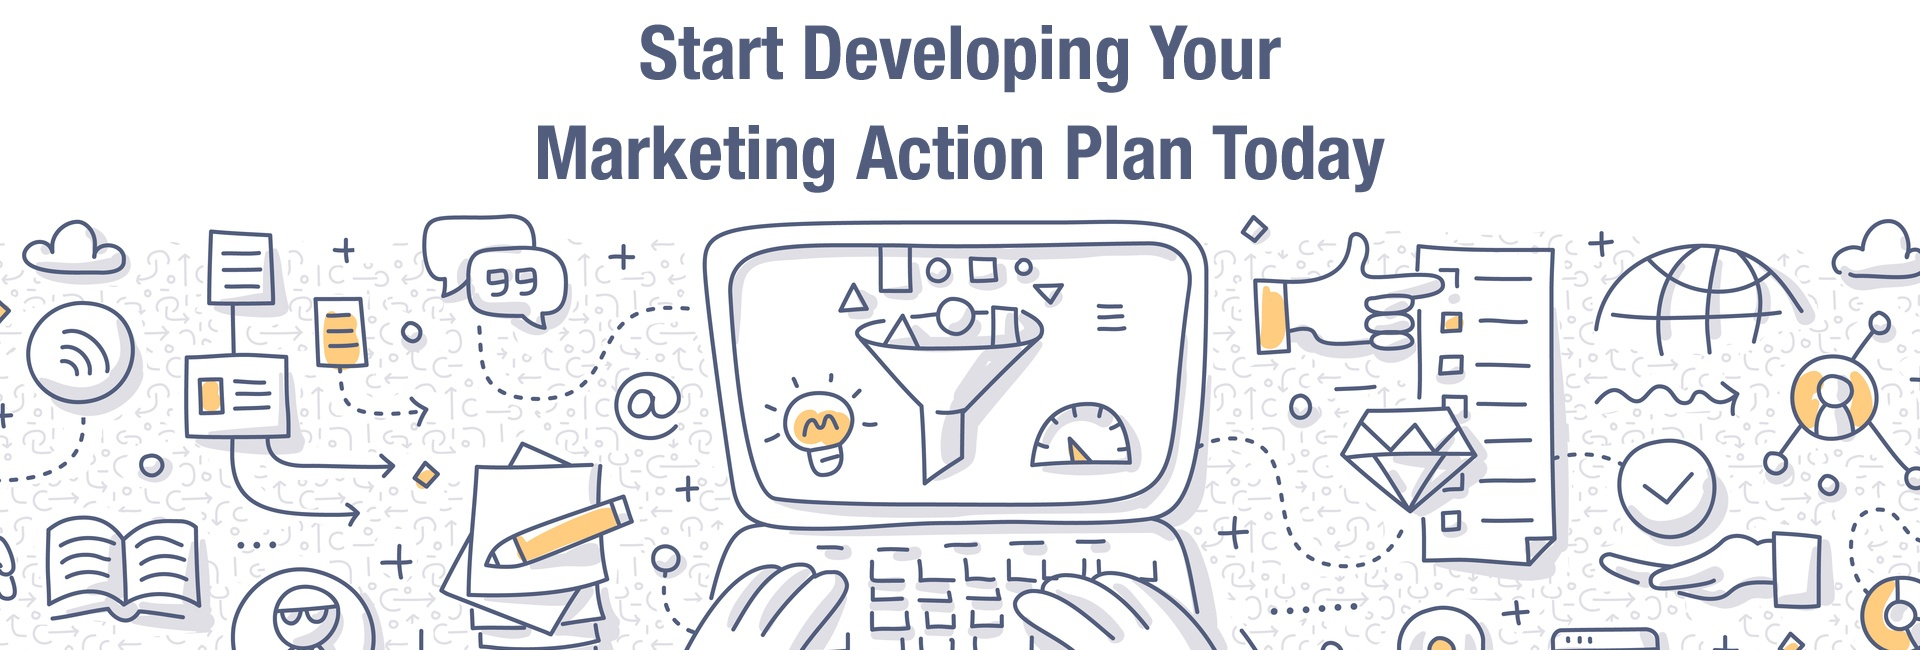 marketing-action-plan.jpg